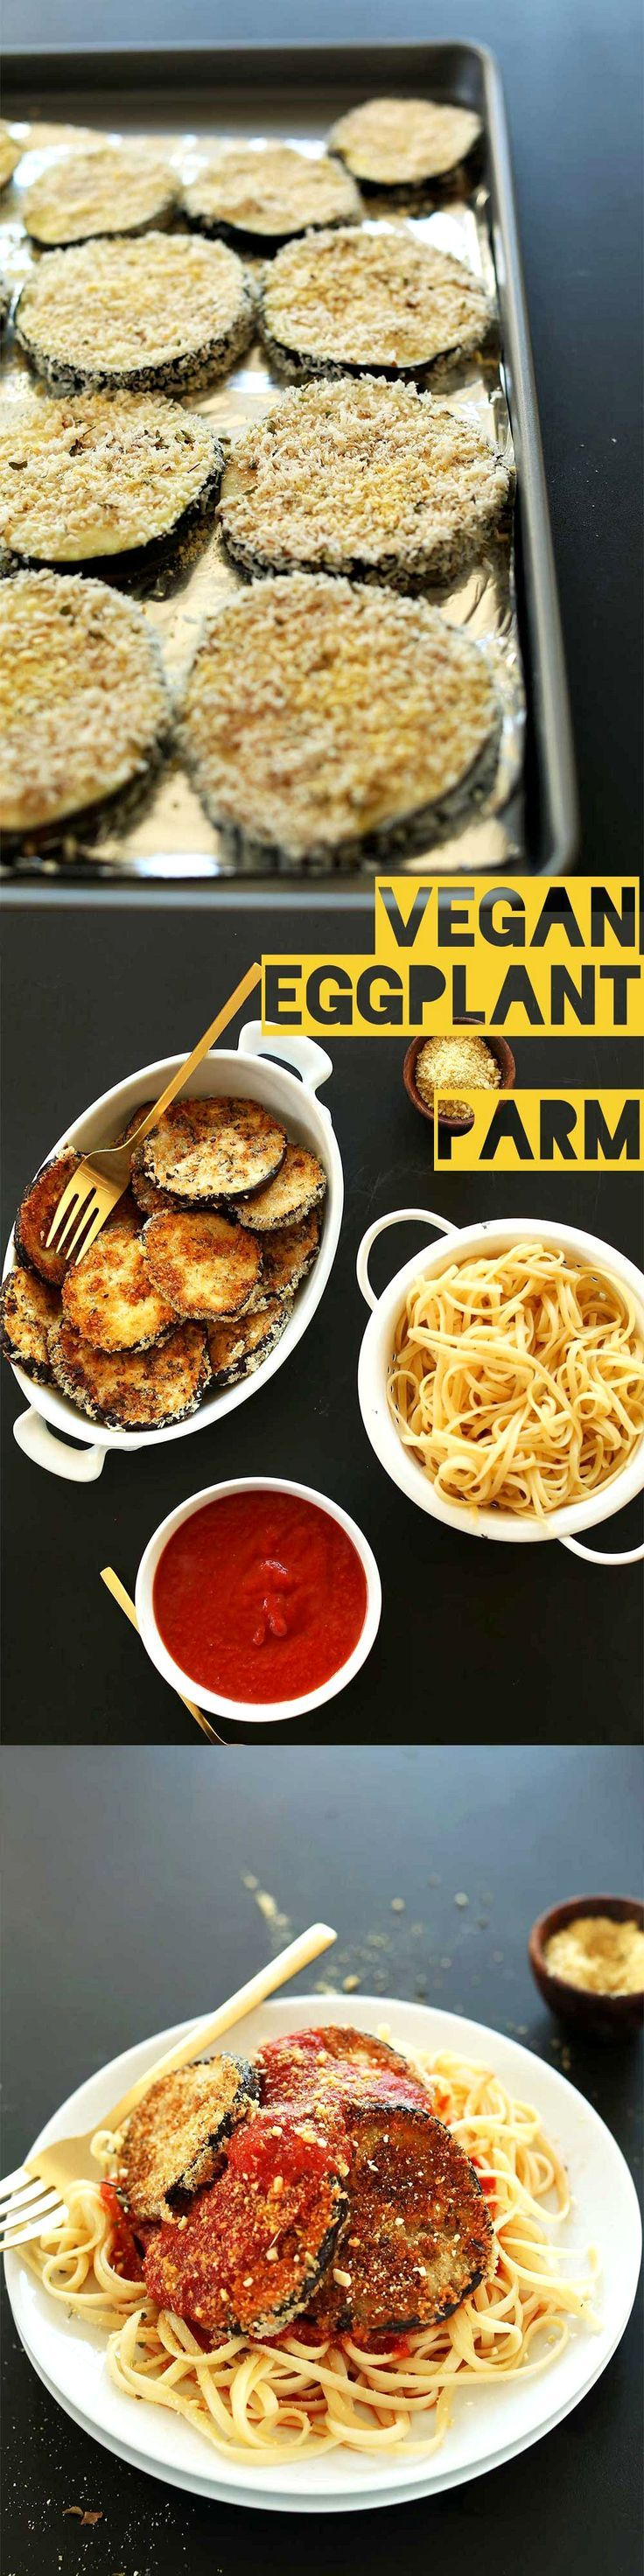 AMAZING, 10 -ingredient Vegan Eggplant Parmesan! You'd never guess the egg went missing. #vegan #healthy